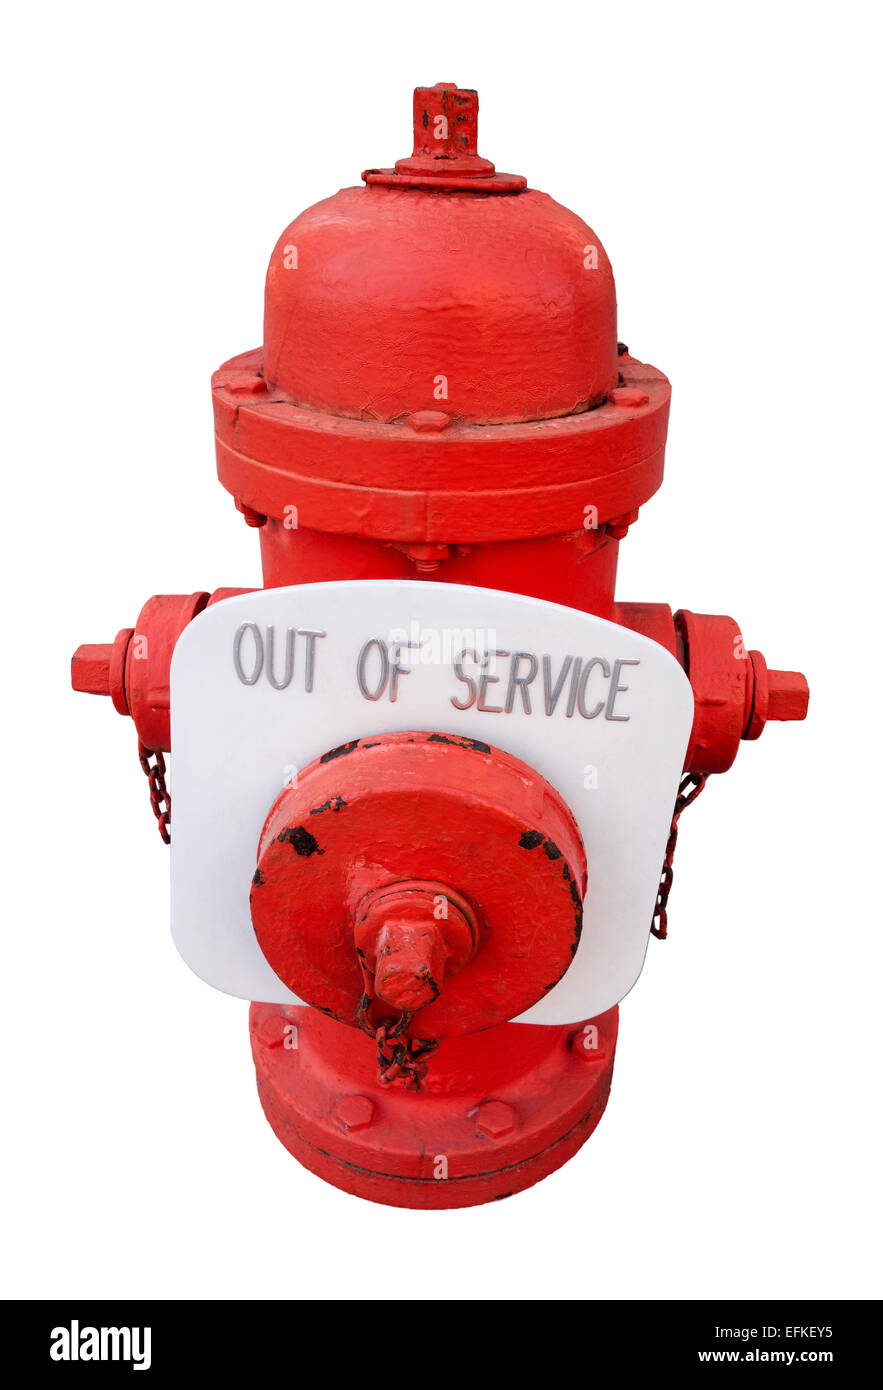 https://c7.alamy.com/comp/EFKEY5/red-us-fire-hydrant-with-out-of-service-sign-not-working-broken-unsafe-EFKEY5.jpg